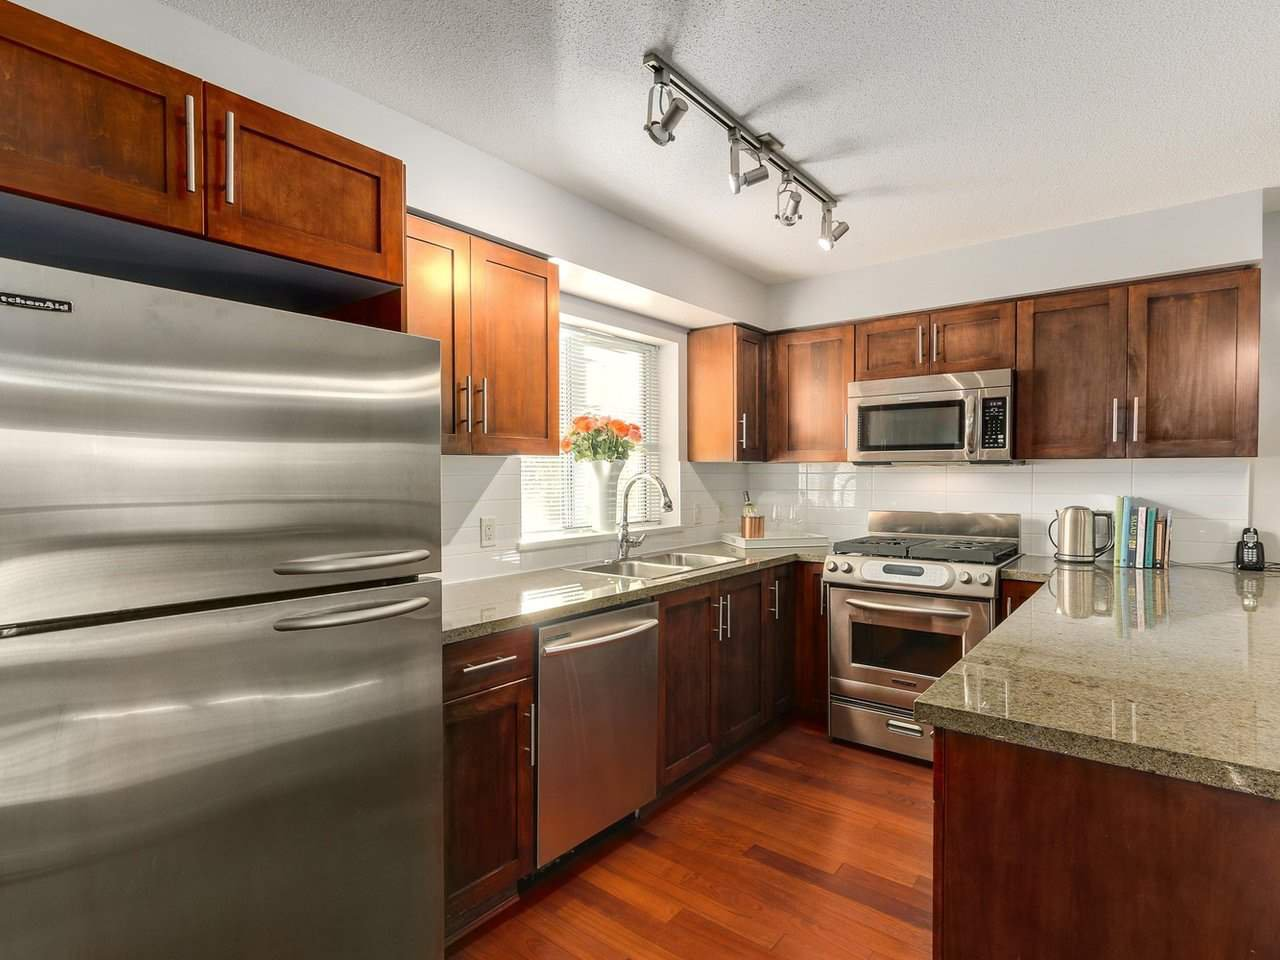 Photo 9: Photos: 119 672 W 6TH AVENUE in Vancouver: Fairview VW Townhouse for sale (Vancouver West)  : MLS®# R2401186